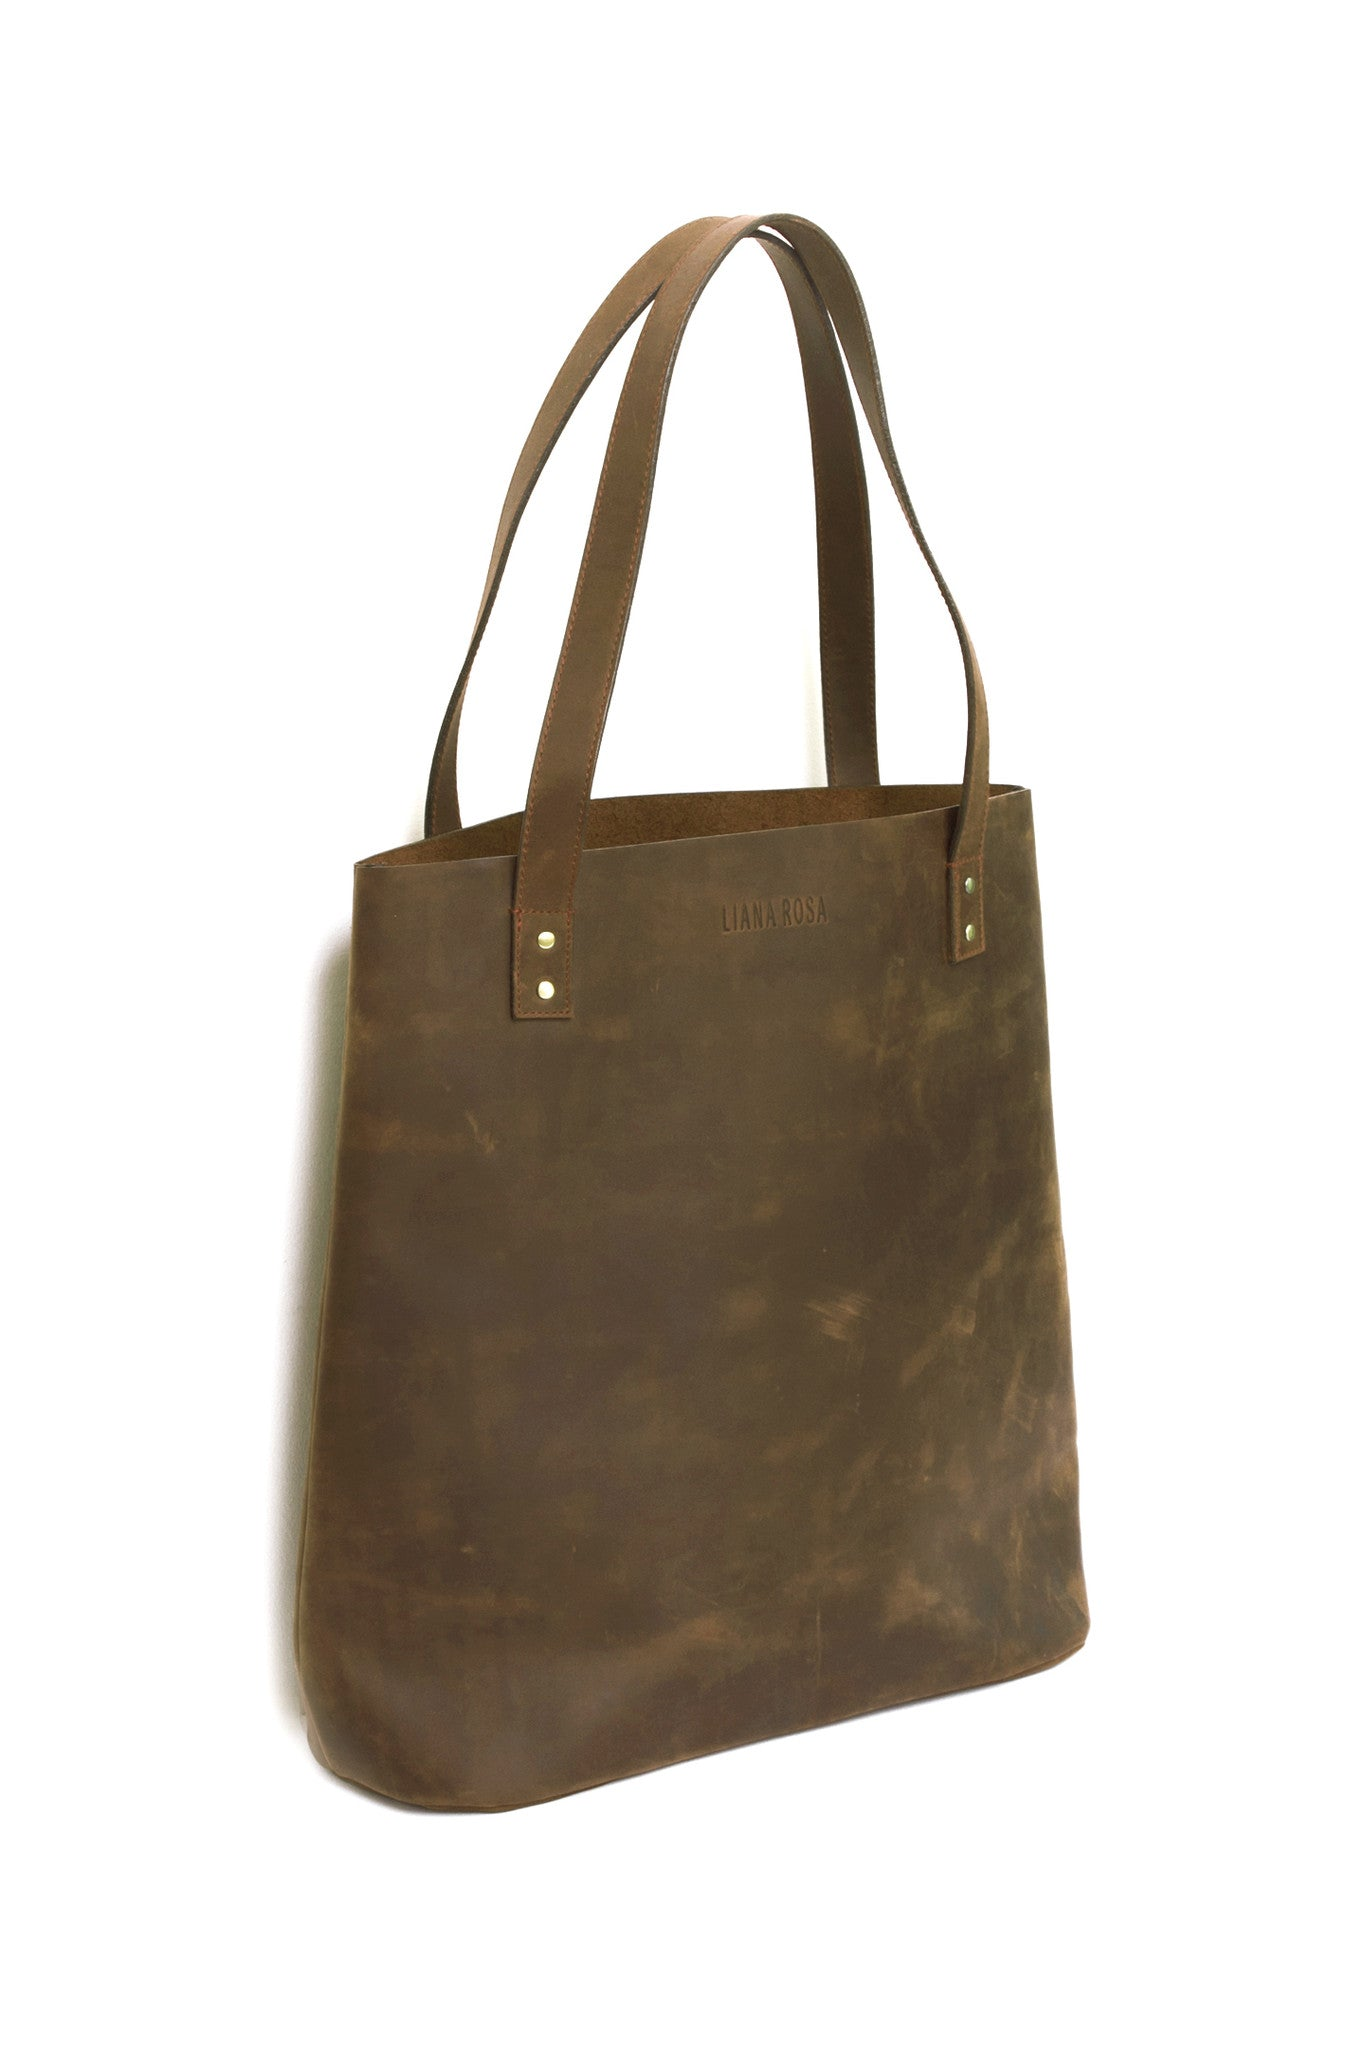 Henry Hunter Brown Leather Tote Bag Side View by Liana Rosa